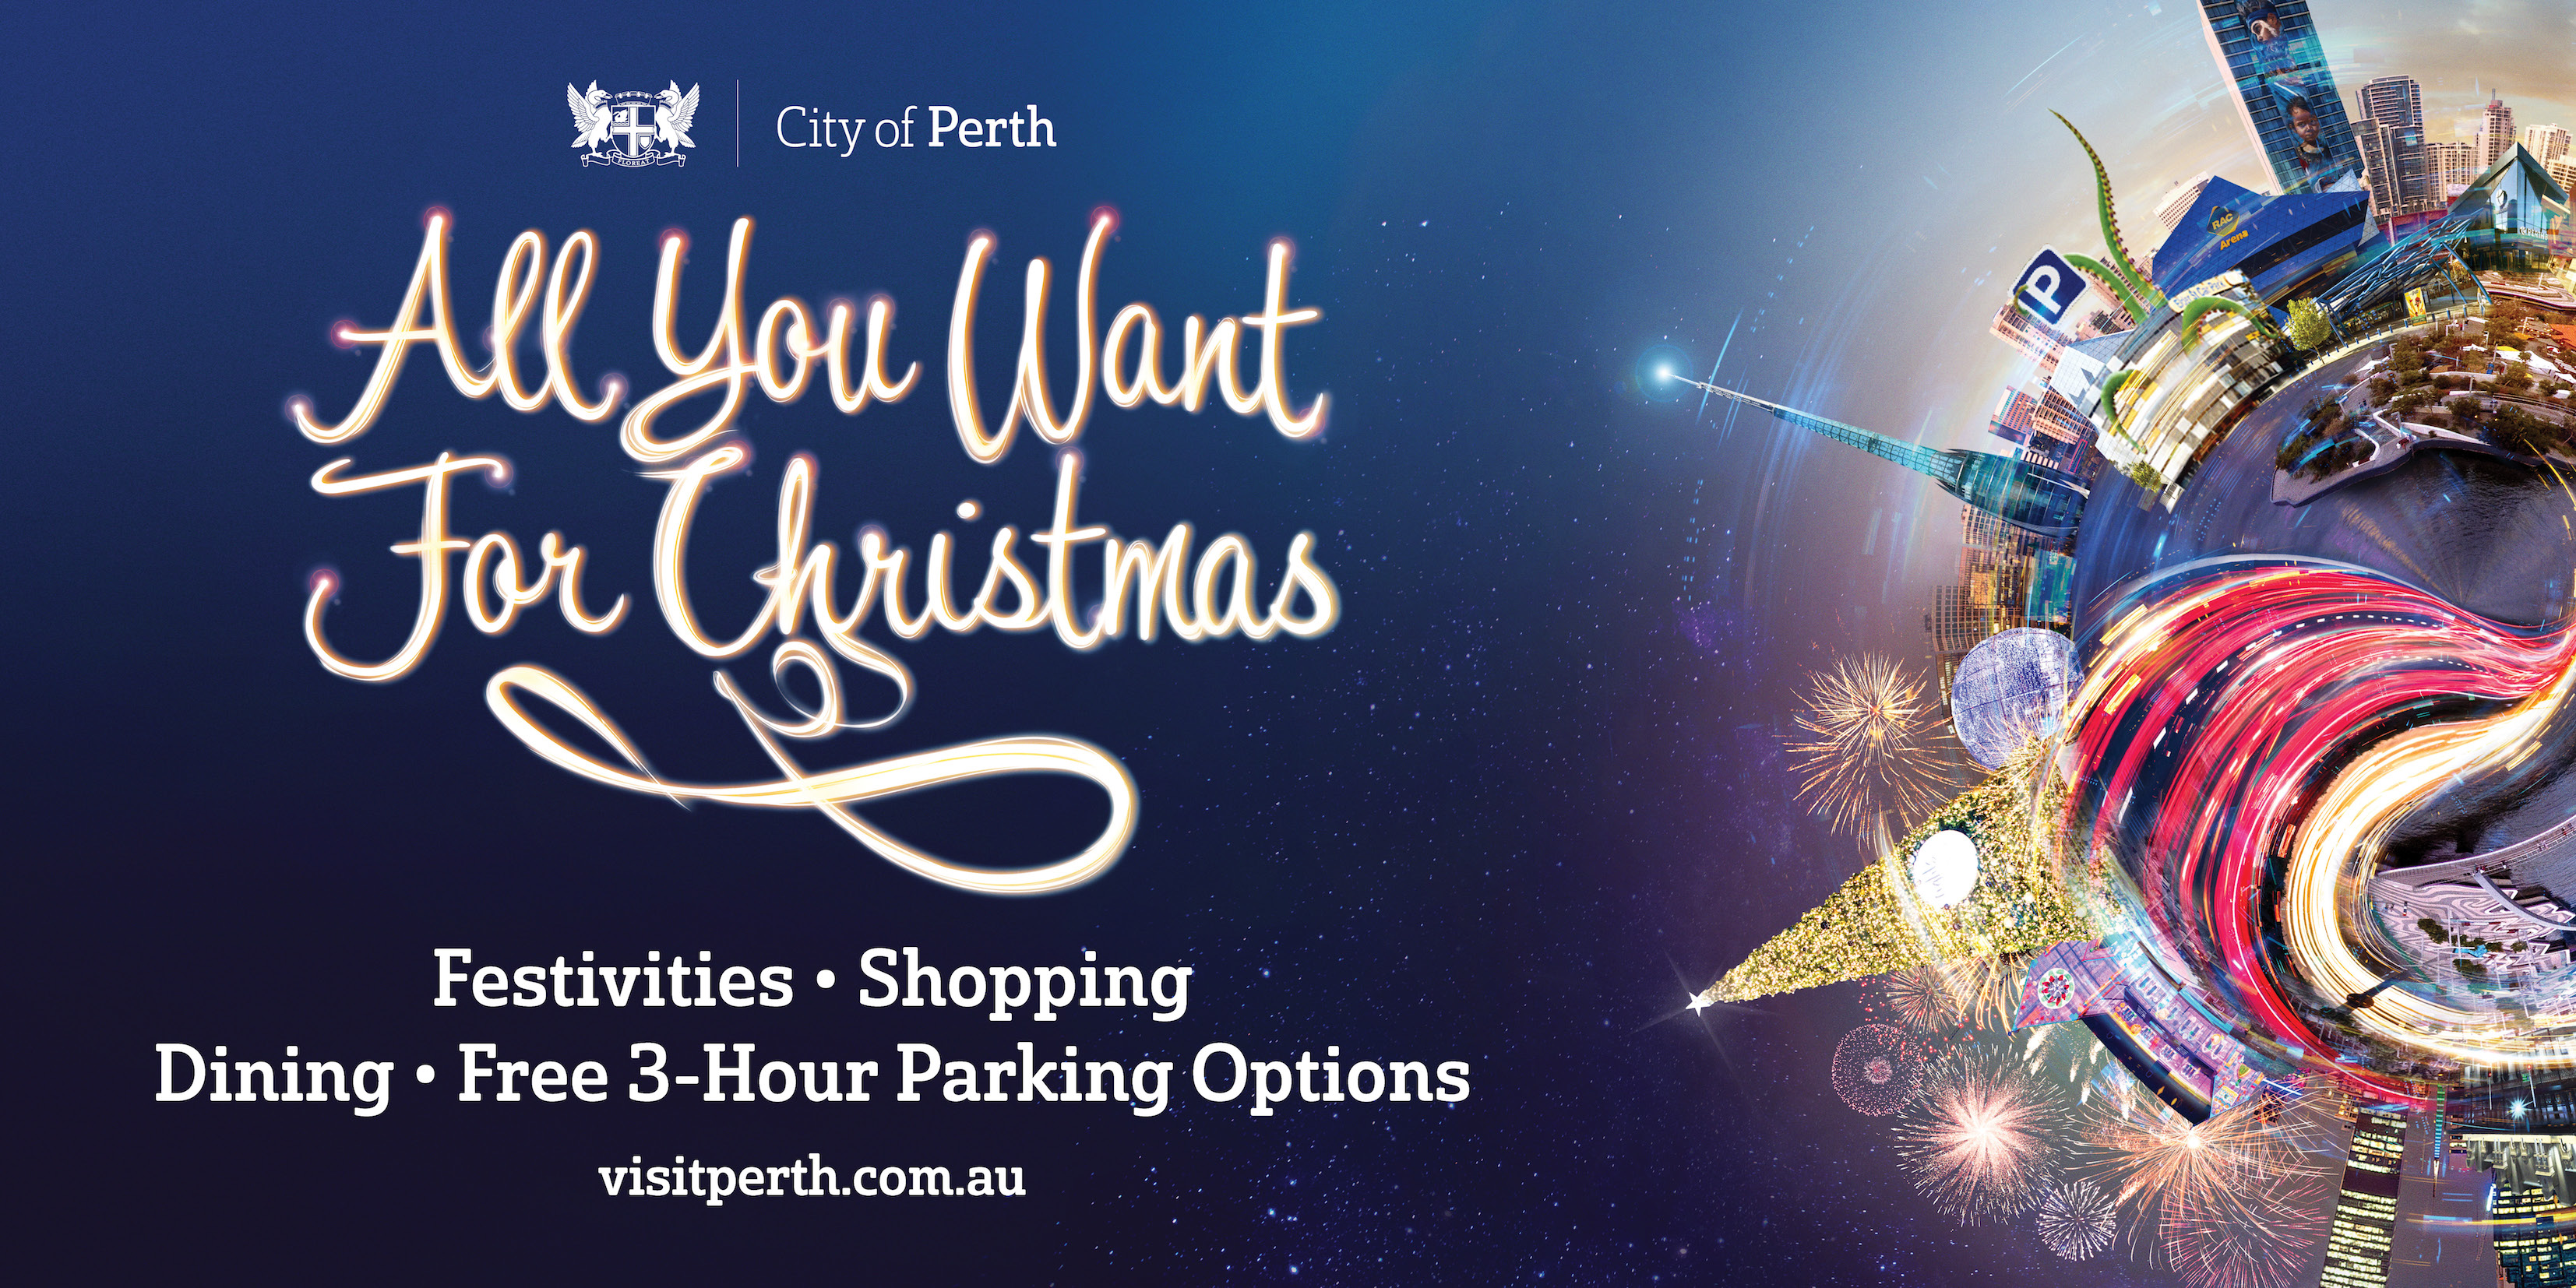 City of Perth has 'All You Want for Christmas' in annual Christmas campaign via 303 MullenLowe